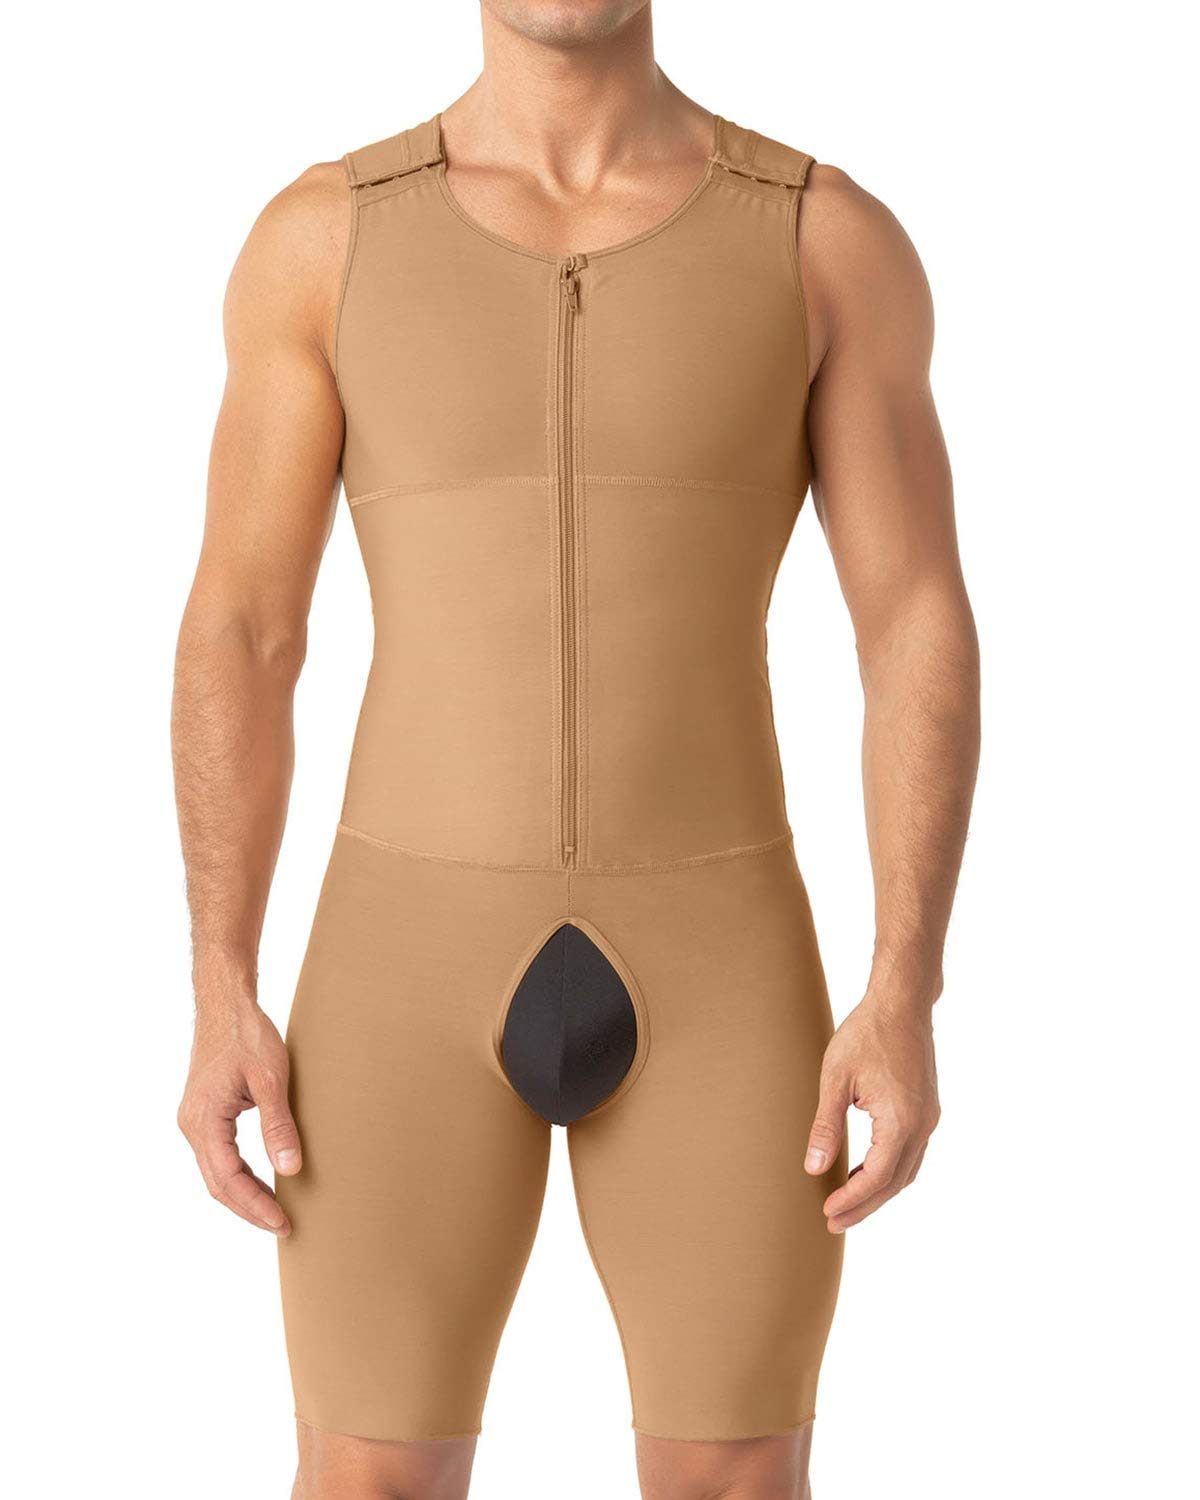 Leo Mens Post-Surgical and Slimming Firm Compression Bodysuit Shaper, Beige, XX-Large by LEO